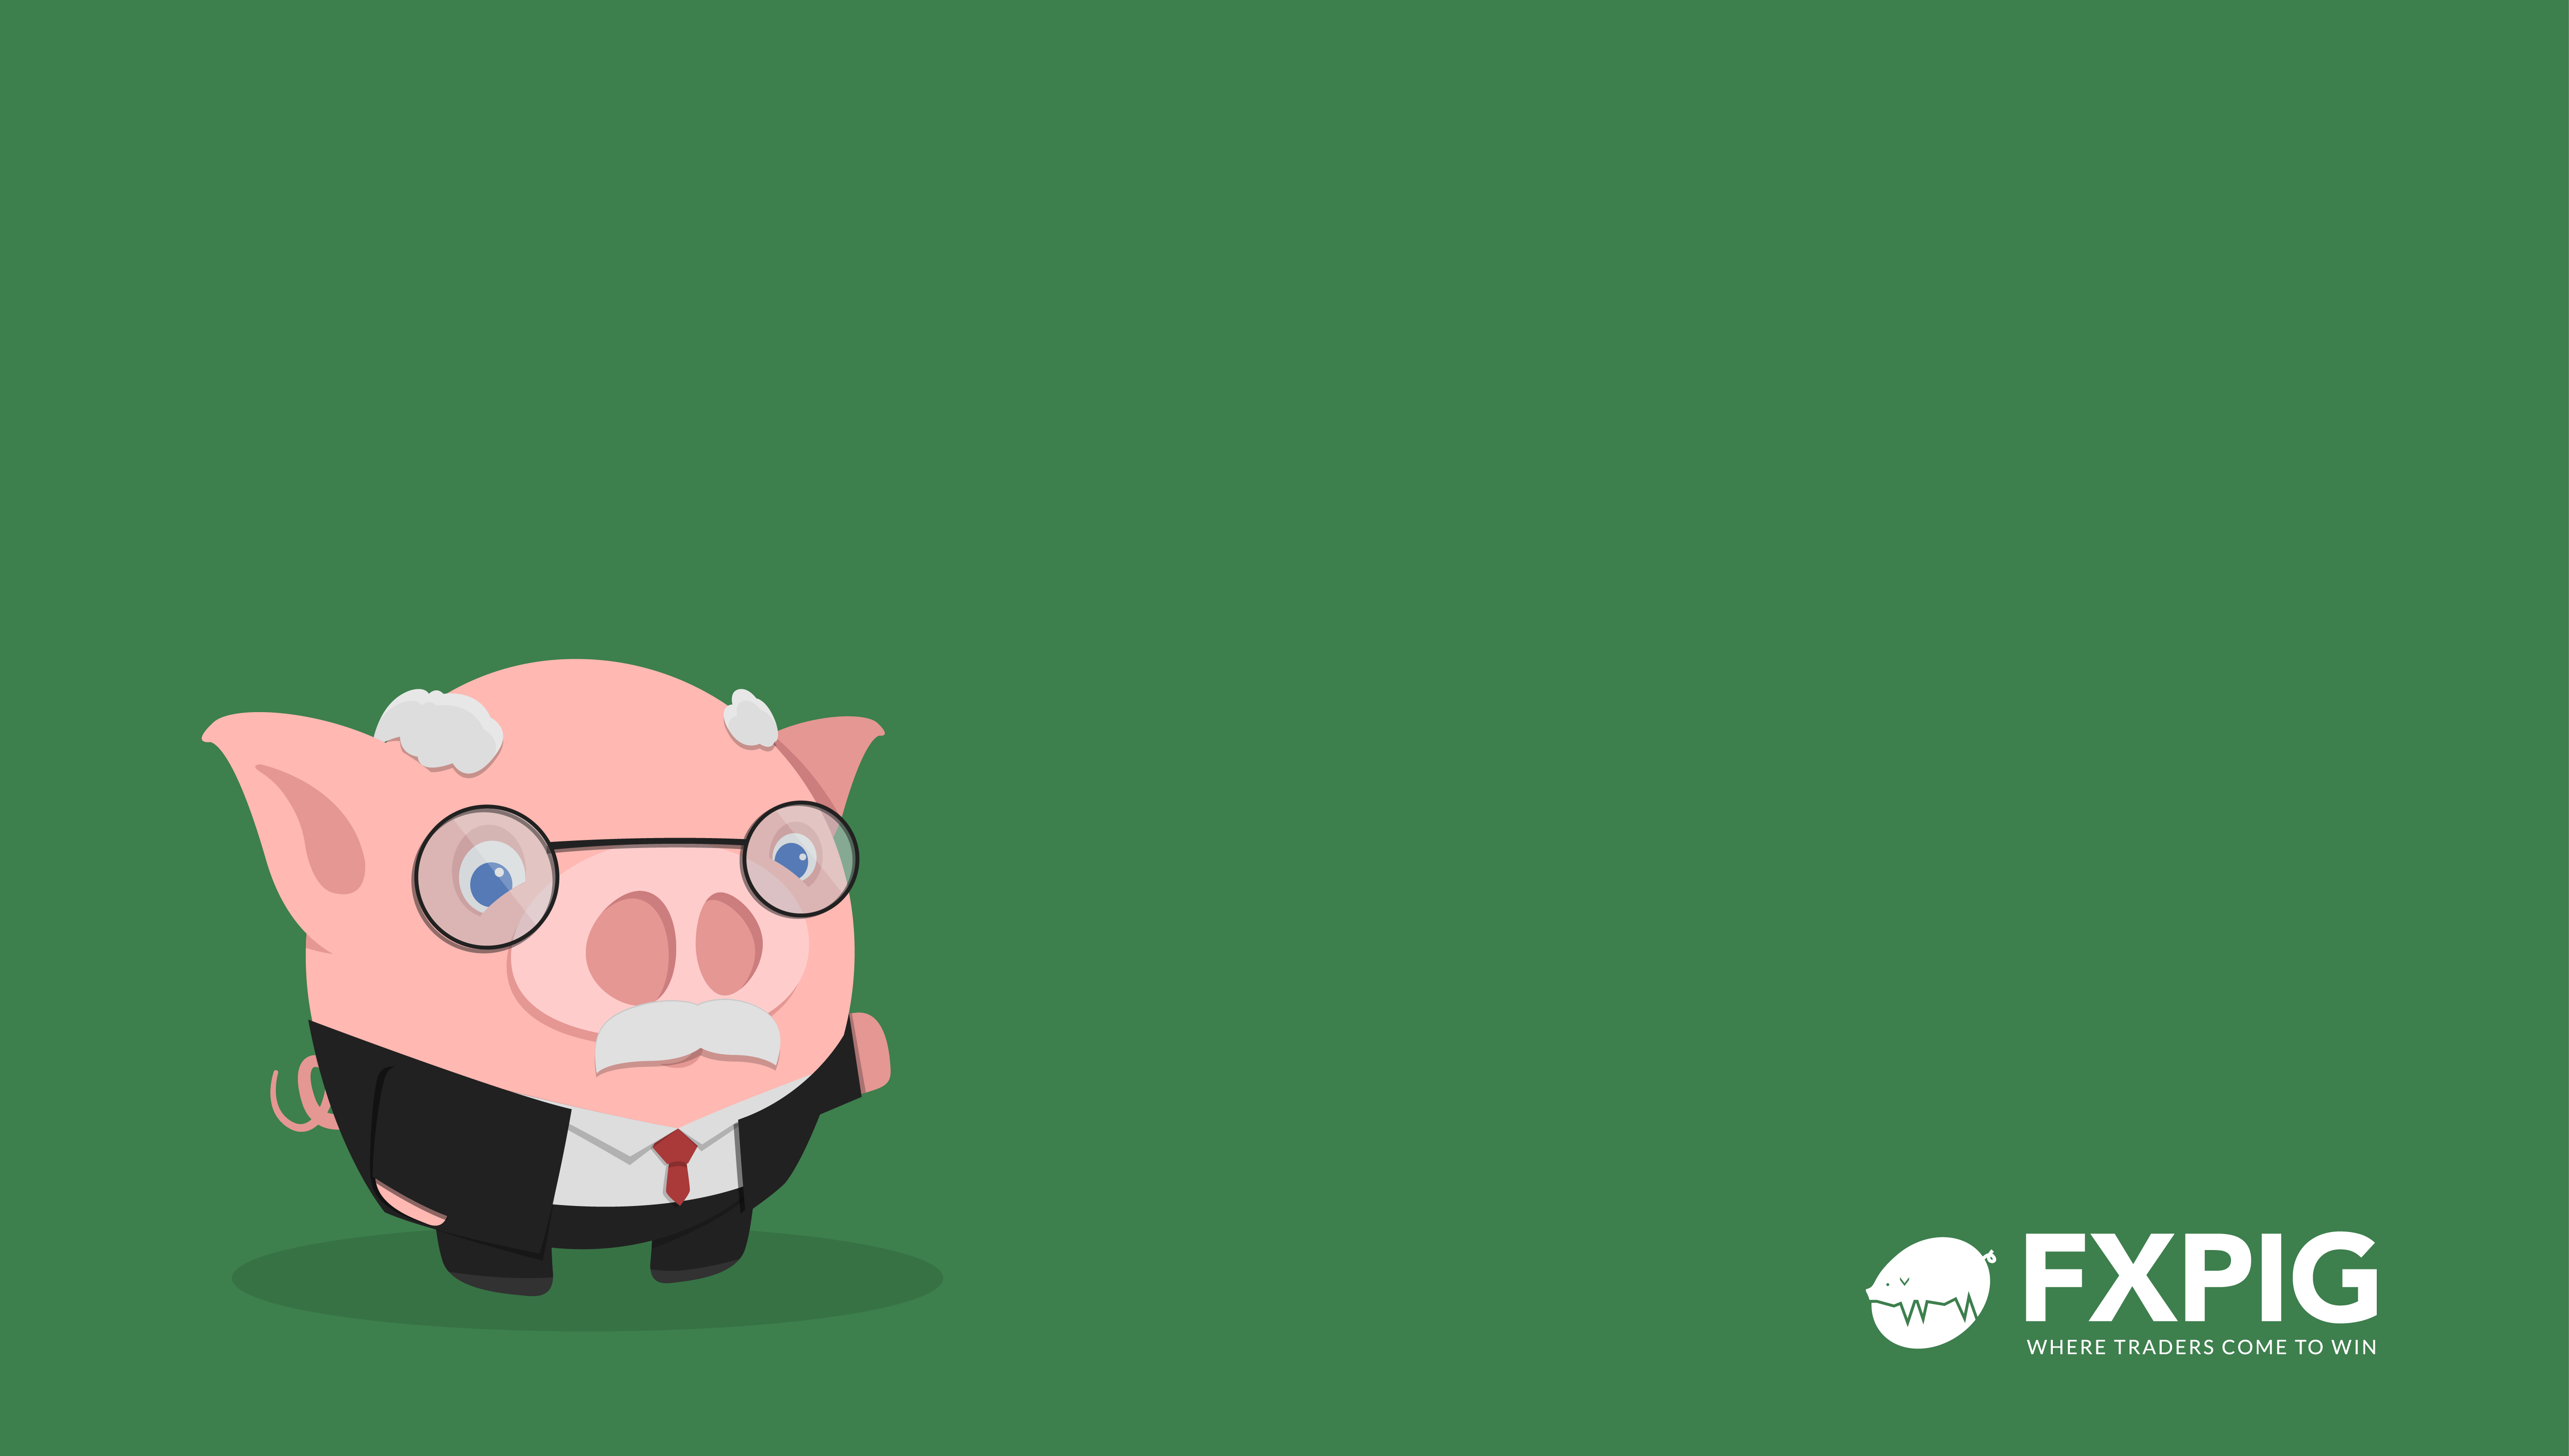 FOREX_TRADING_WISDOM_Rule#1_FXPIG